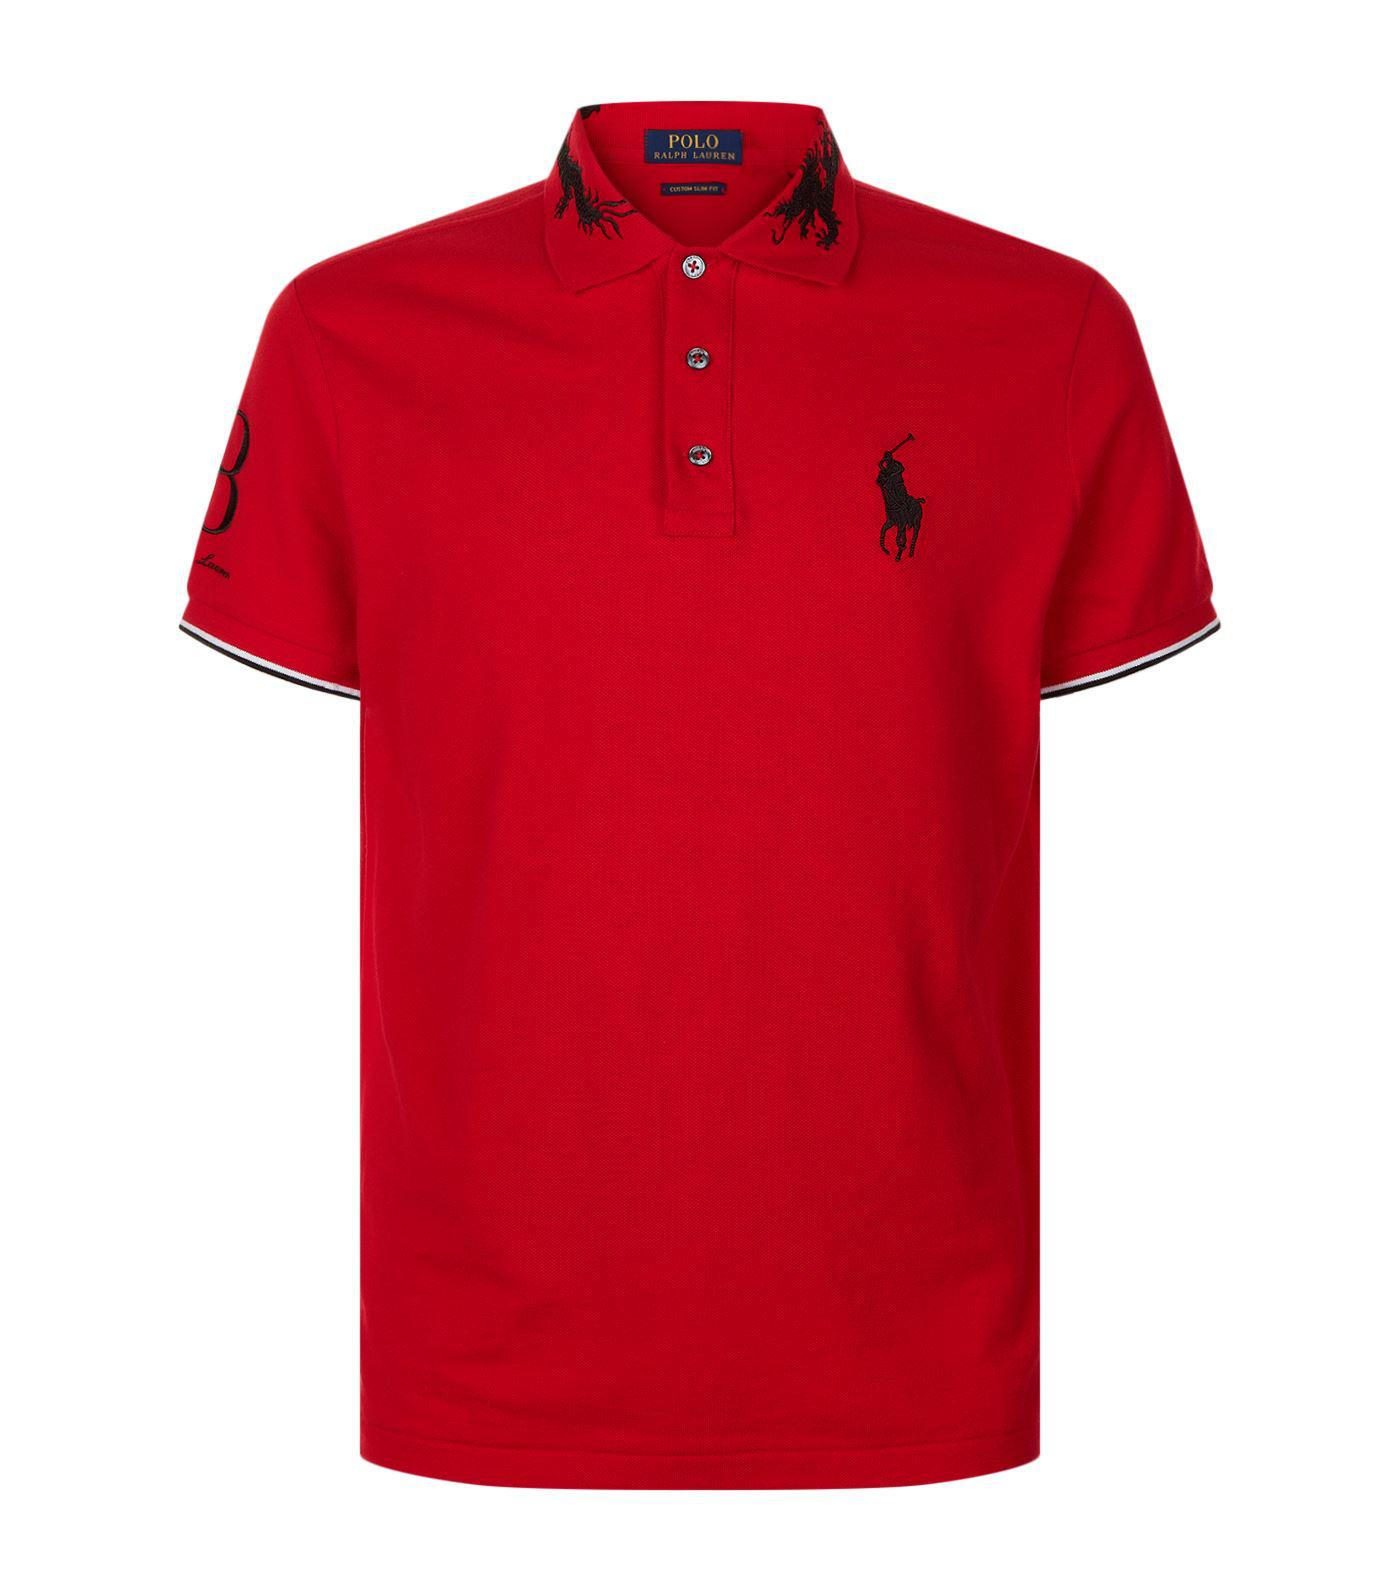 fd13a674 Polo Ralph Lauren Dragon Embroidered Polo Neck Top in Red for Men - Lyst